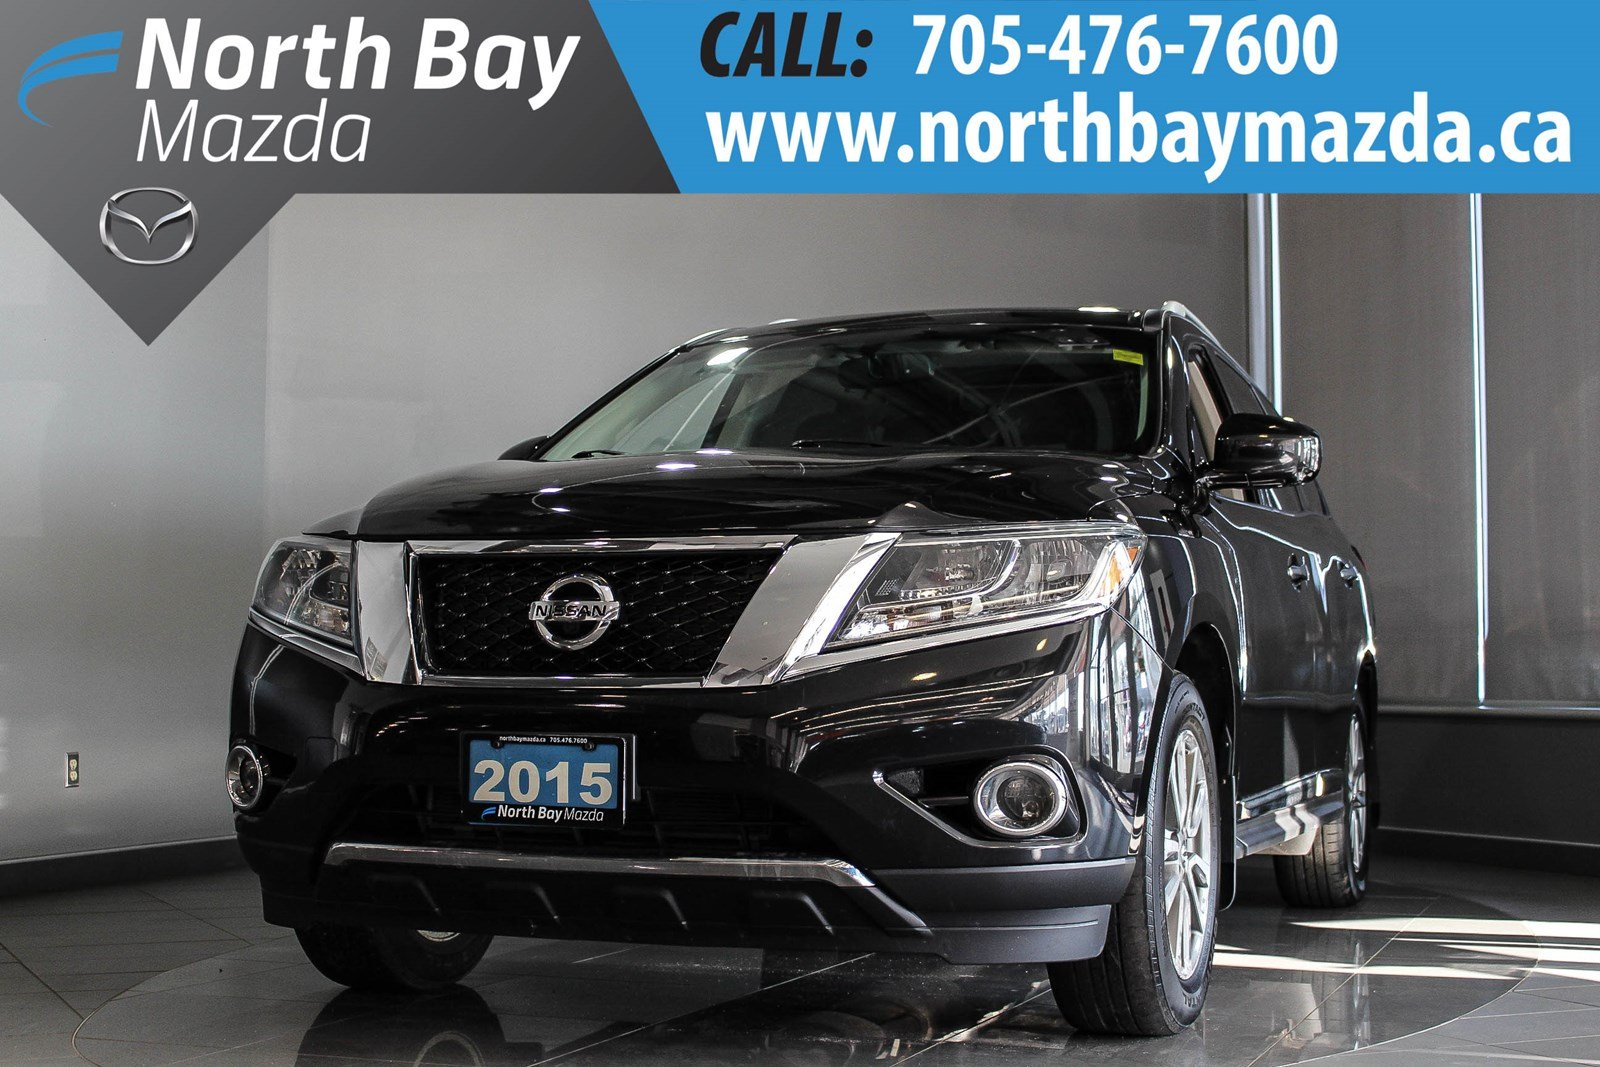 Pre-Owned 2015 Nissan Pathfinder SL 4WD with Pano Sunroof, Heated Steering Wheel!